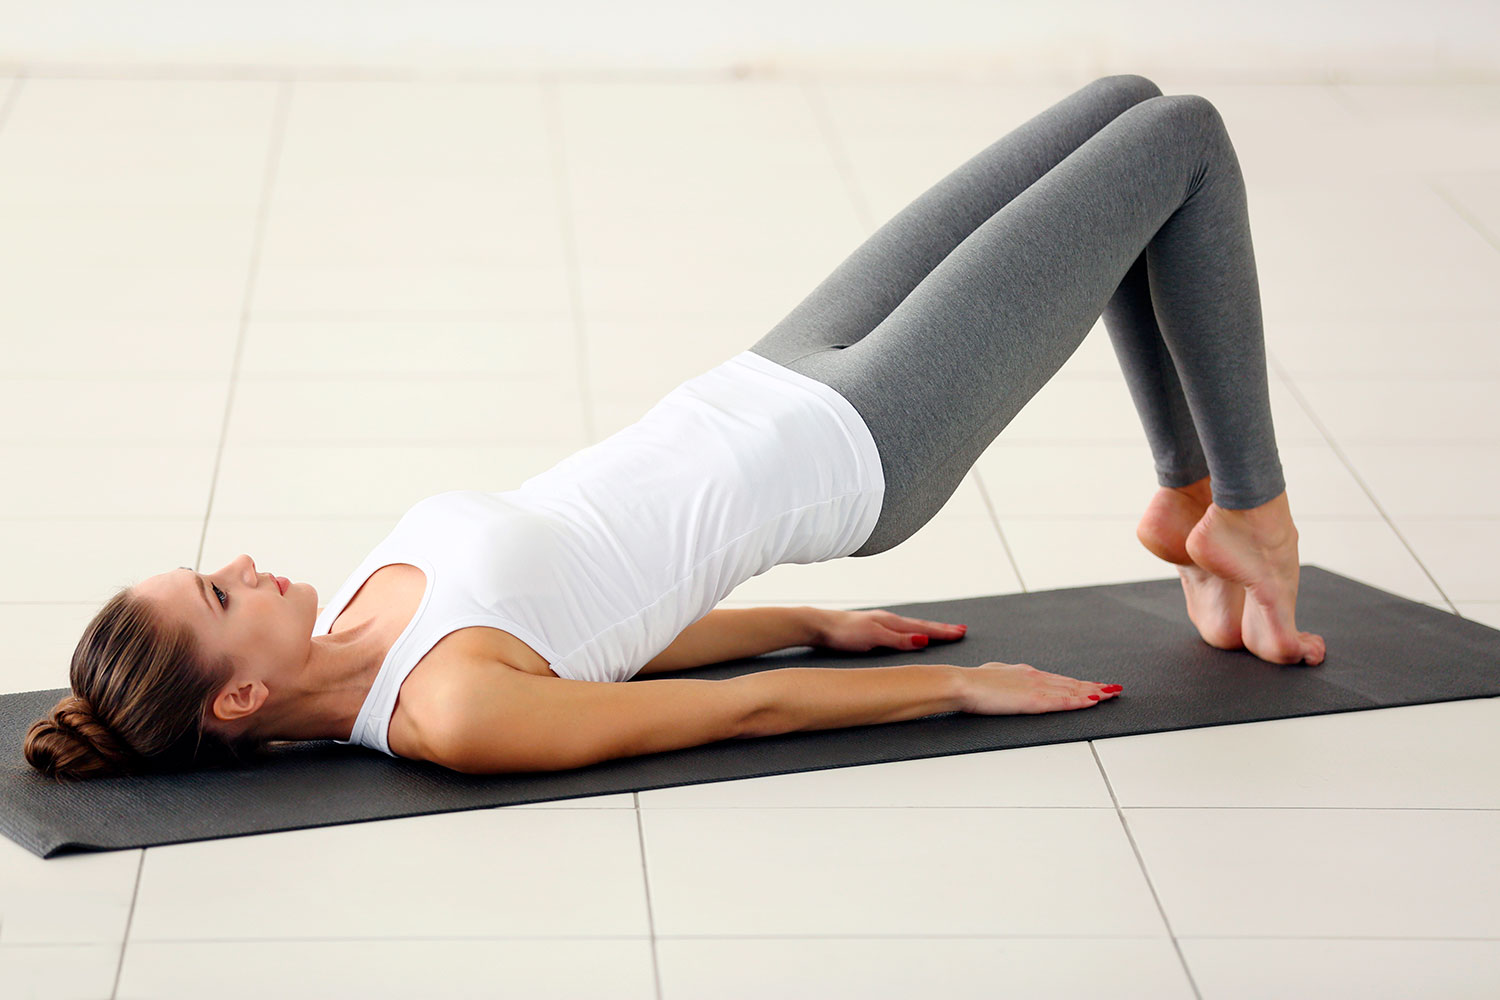 17 Reasons Yoga is Better Than the Gym